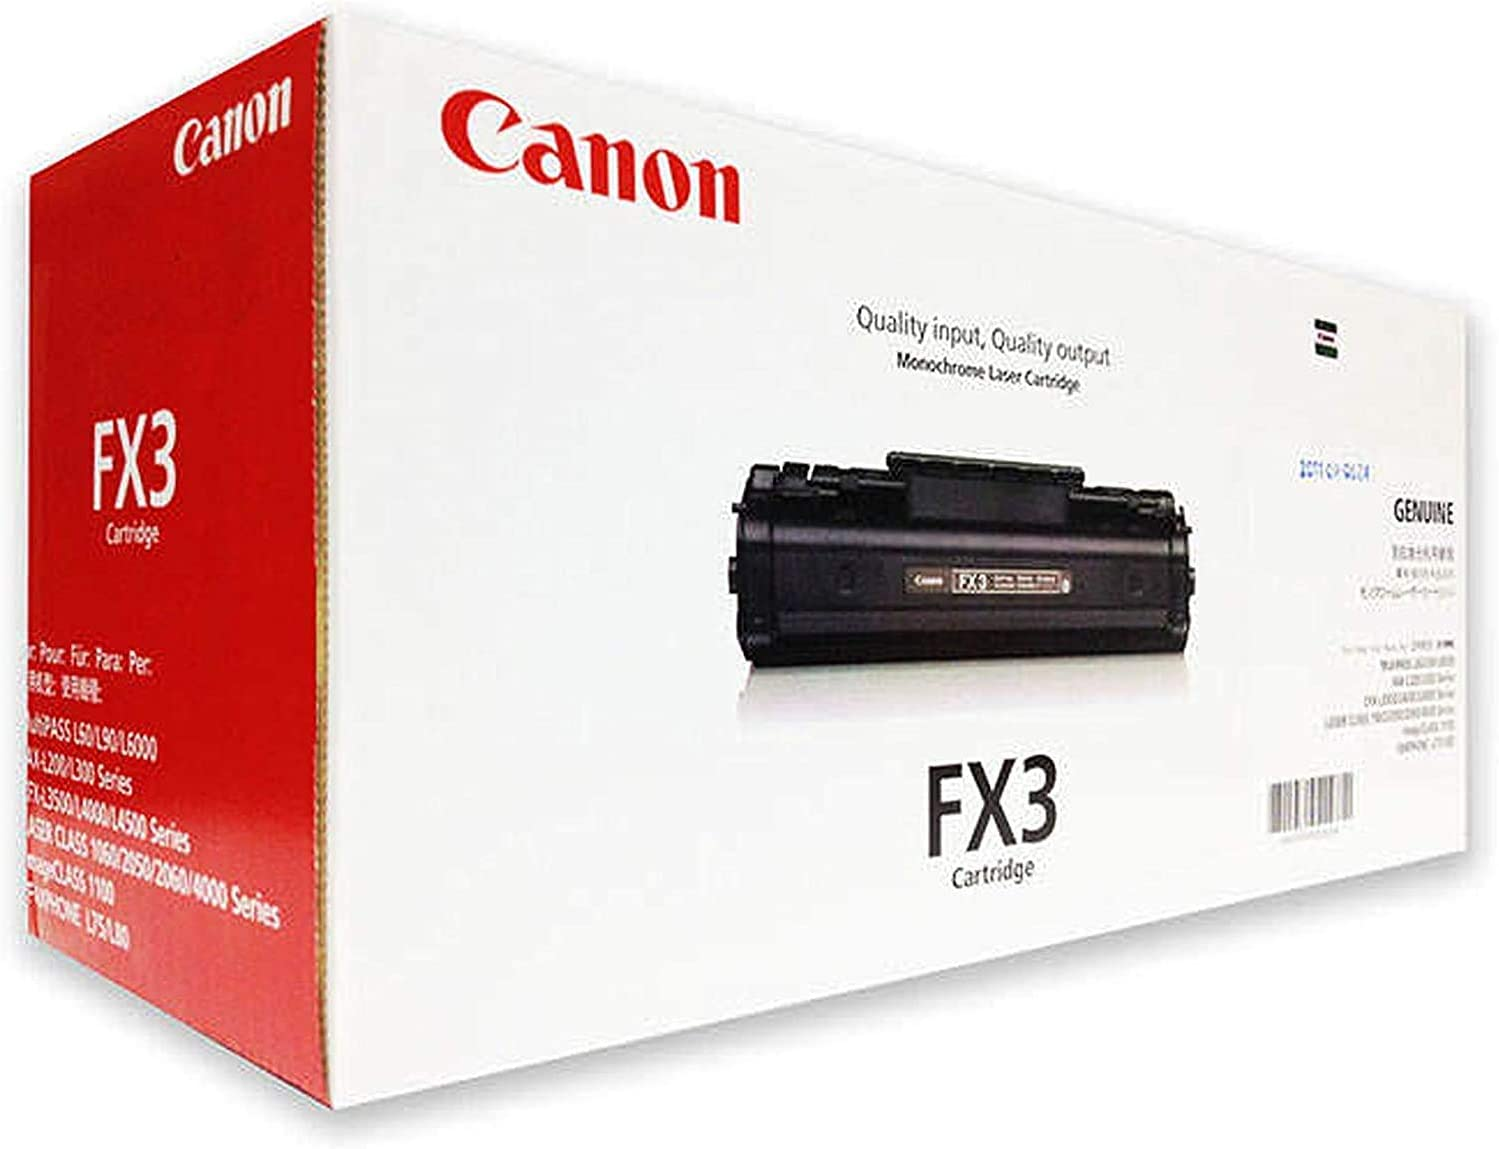 Canon FX3 1557A002BA LaserClass 2050P 2060 2060P 300 Toner Cartridge (Black) in Retail Packaging